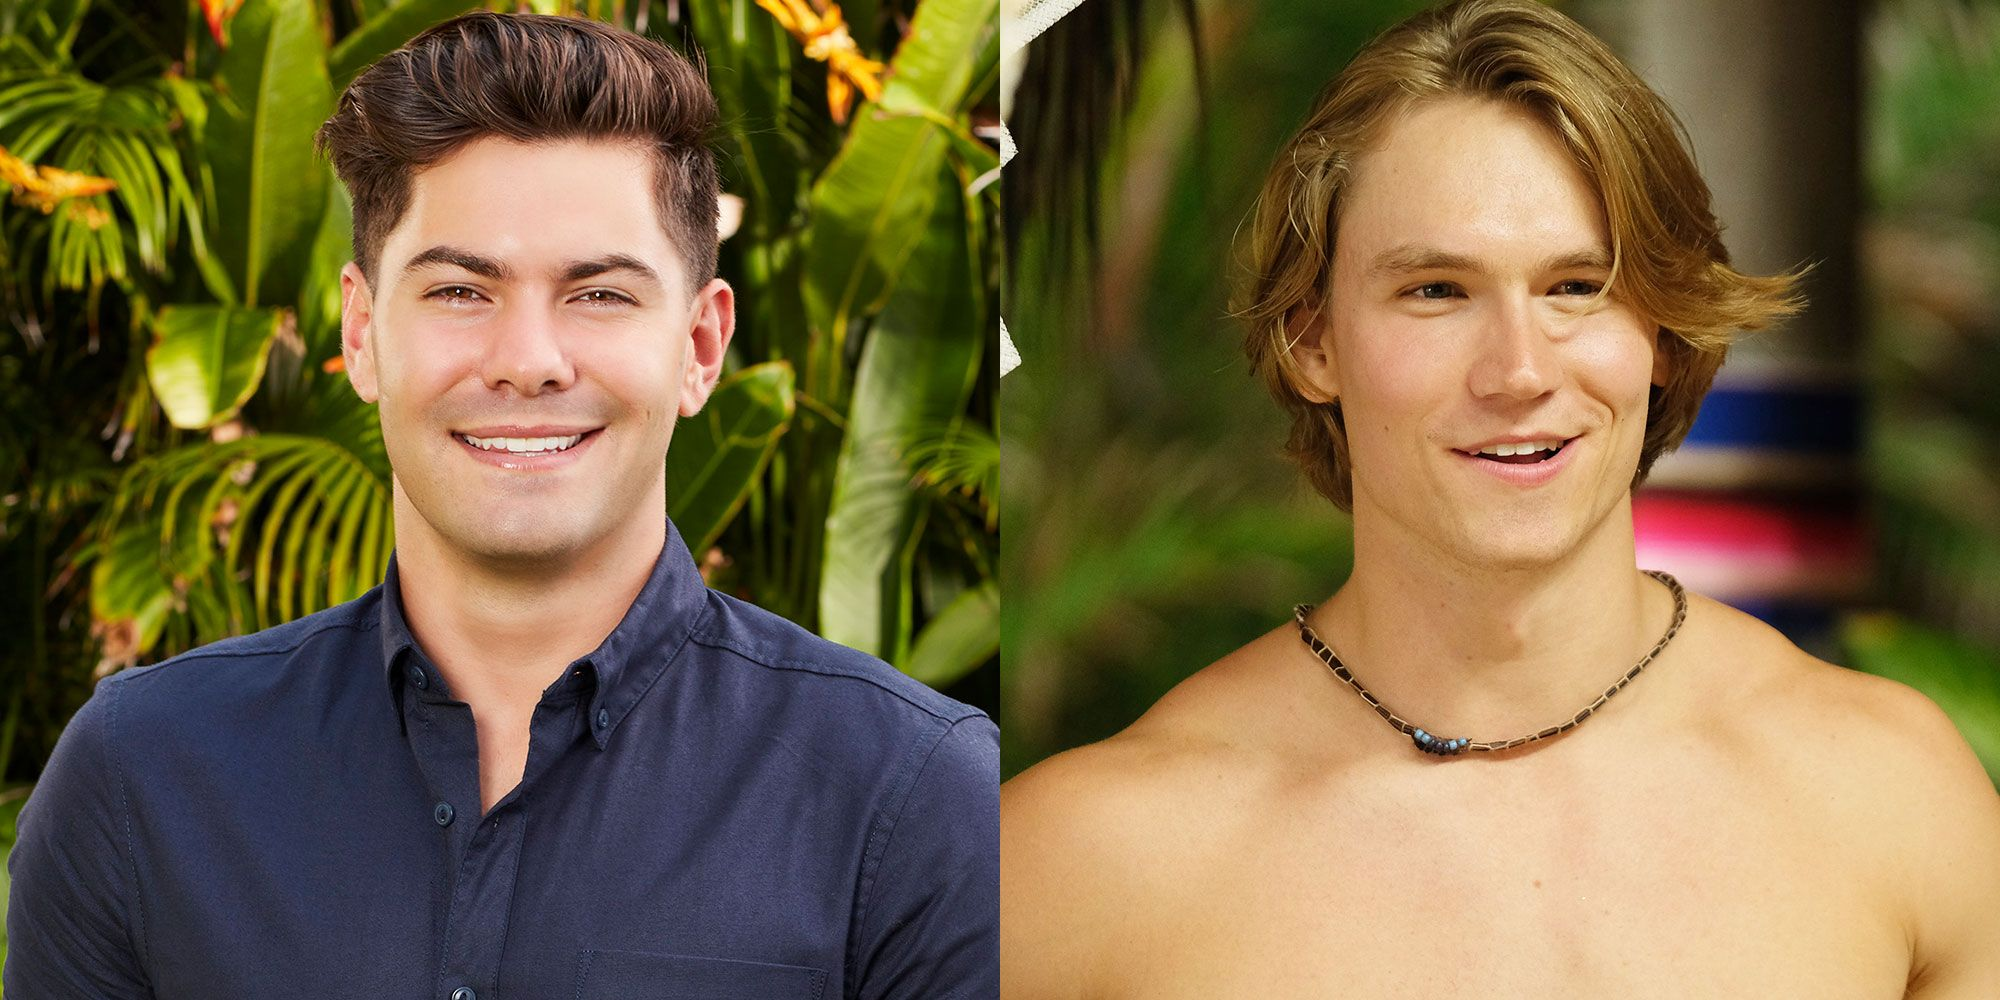 'Bachelor in Paradise' Bartender Wells Adams Explains Why Dylan Barbour 'Really Impressed' Him With His Maturity